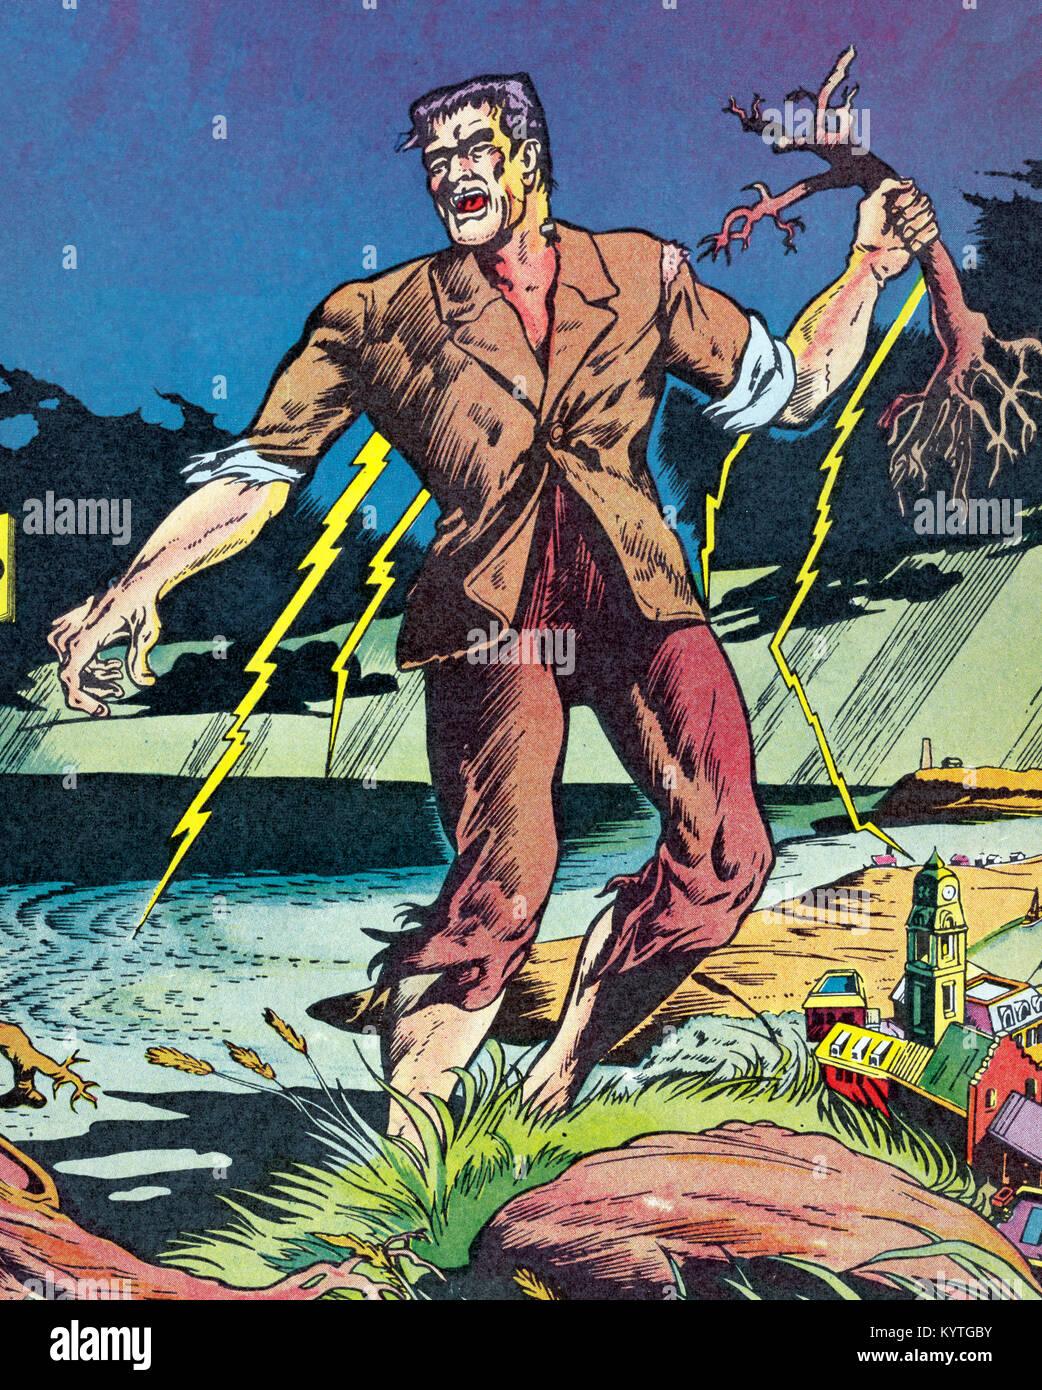 Frankenstein Illustration From The Cover Of A 1949 Edition By Mary Shelley